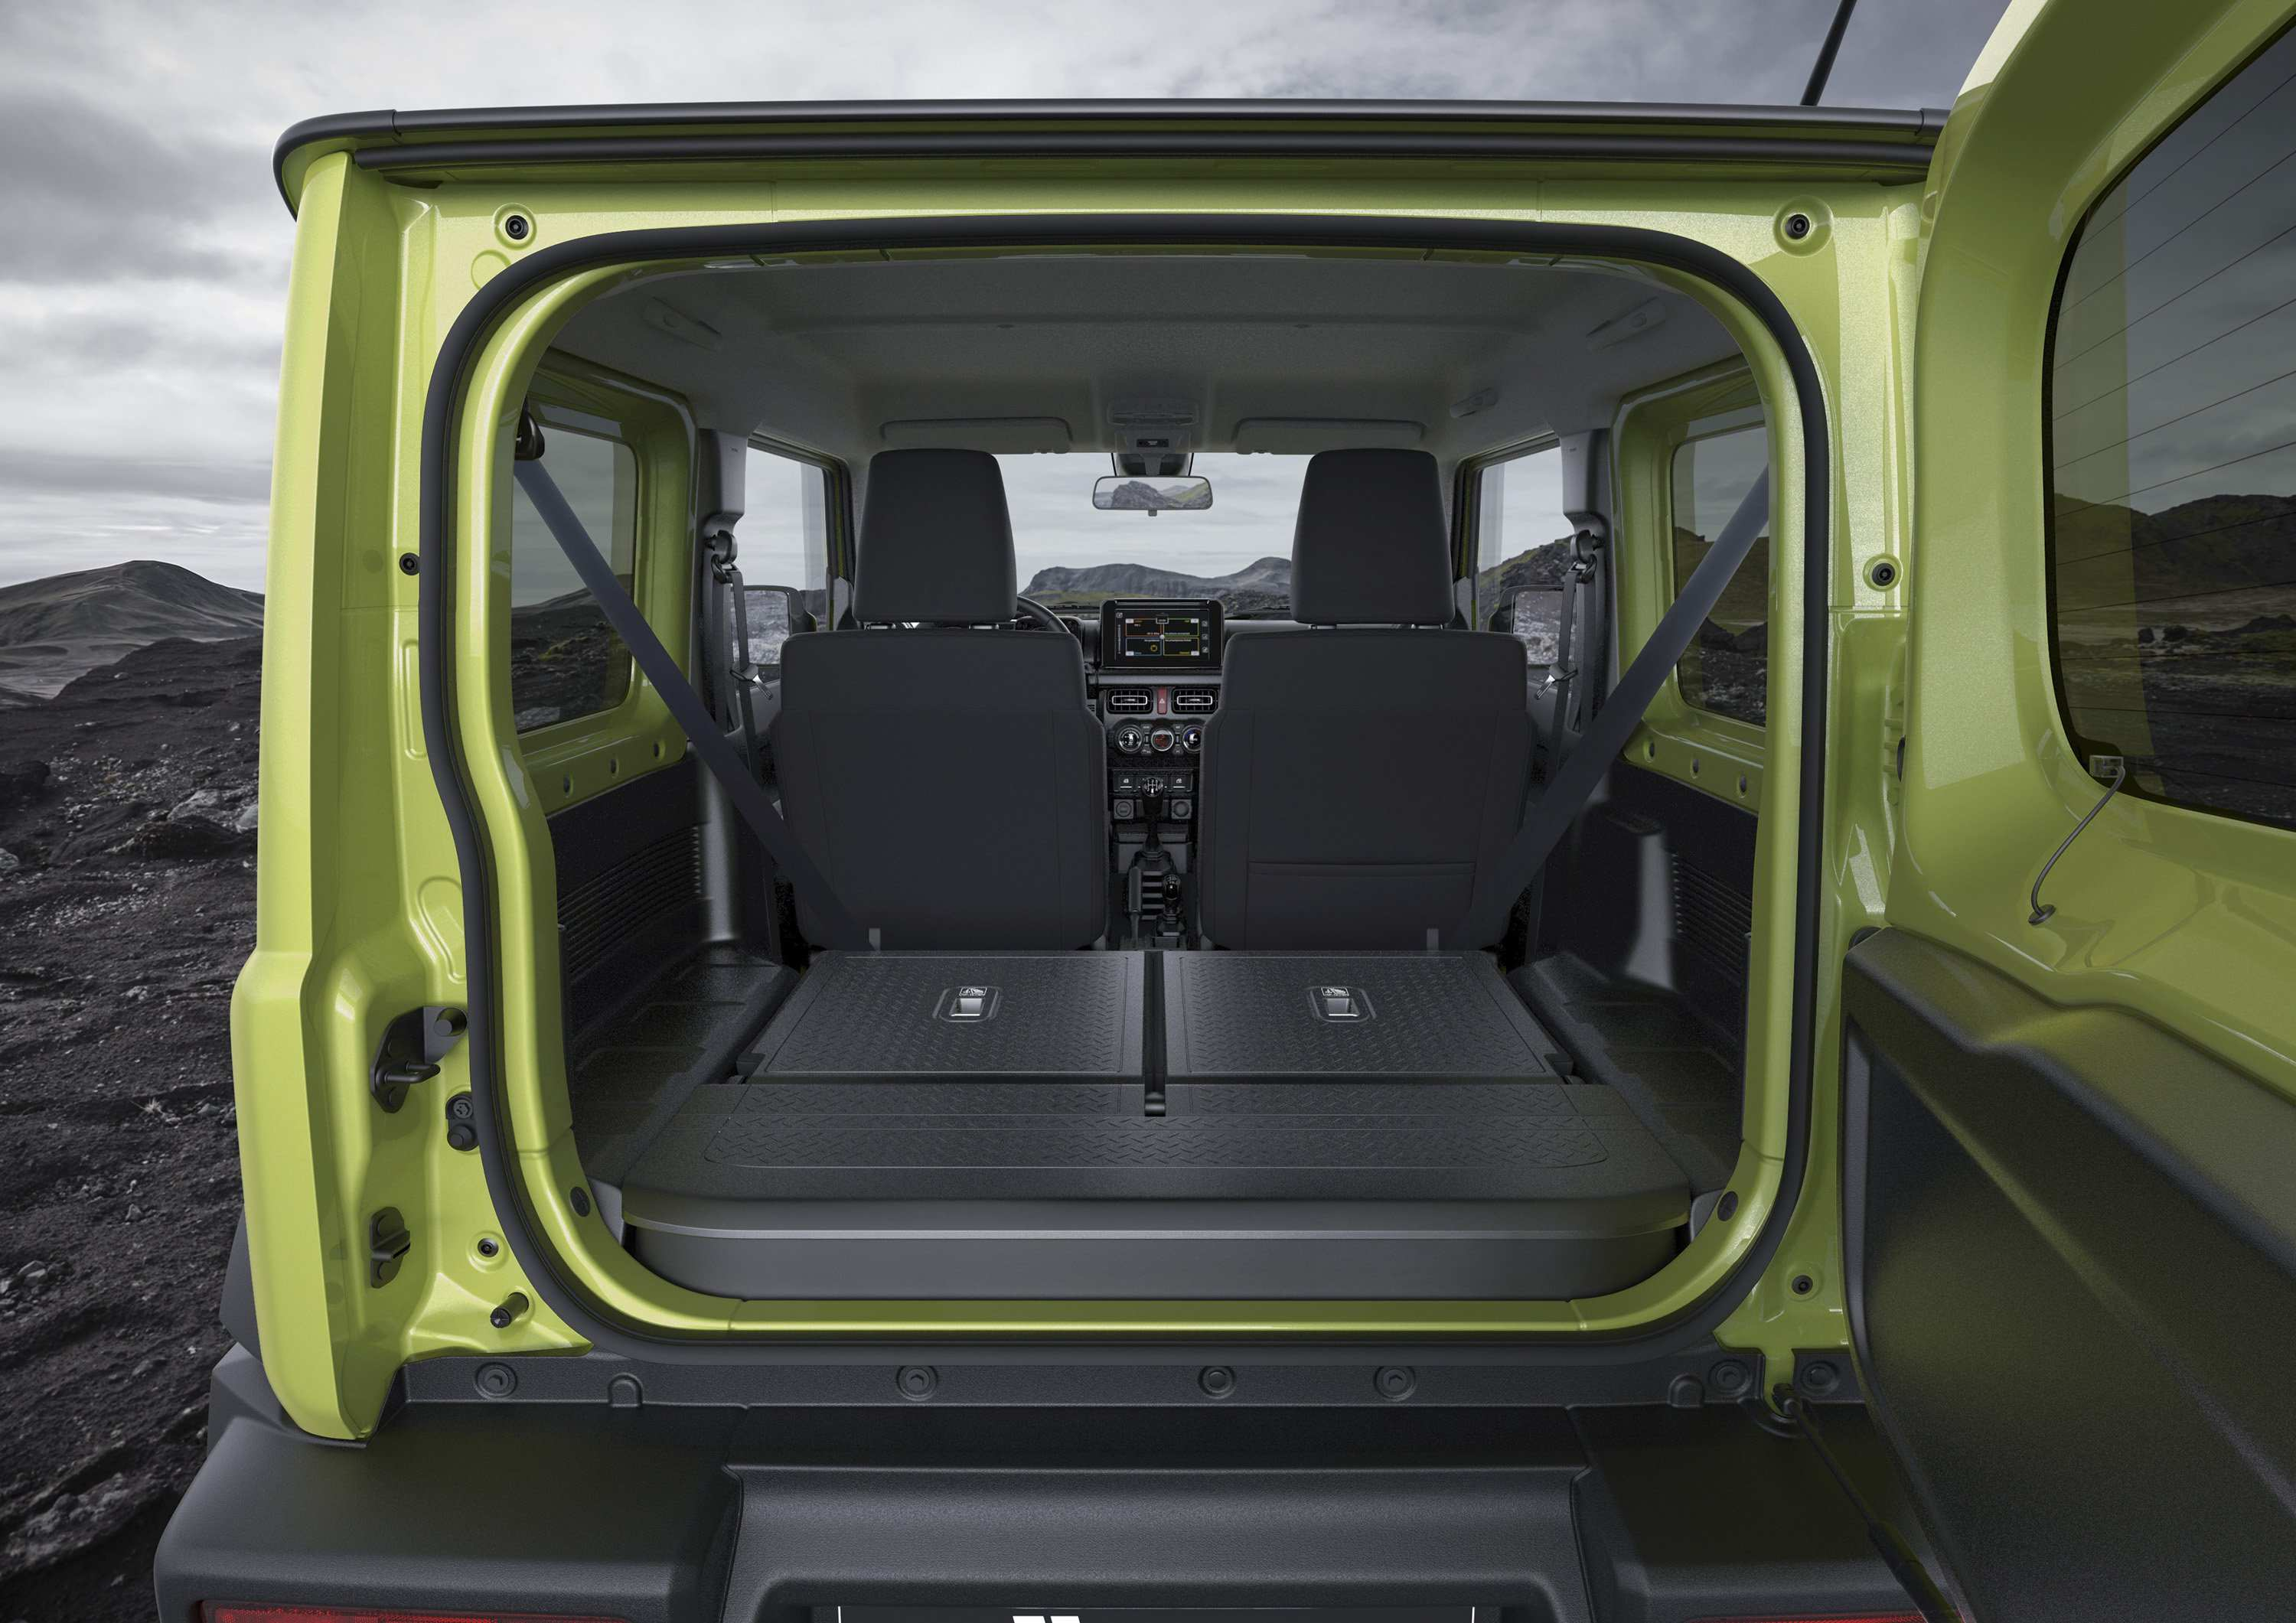 85 New Suzuki Jimny 2019 Interior Redesign for Suzuki Jimny 2019 Interior